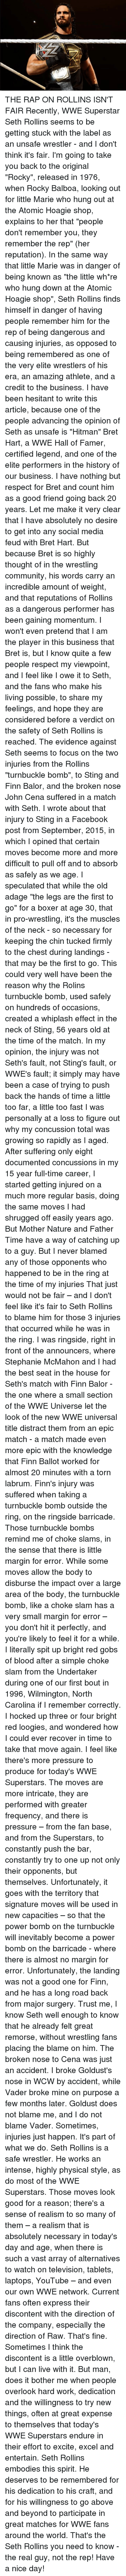 "Bloods, Bodies , and Community: THE RAP ON ROLLINS ISN'T FAIR  Recently, WWE Superstar Seth Rollins seems to be getting stuck with the label as an unsafe wrestler - and I don't think it's fair. I'm going to take you back to the original ""Rocky"", released in 1976, when Rocky Balboa, looking out for little Marie who hung out at the Atomic Hoagie shop, explains to her that ""people don't remember you, they remember the rep"" (her reputation). In the same way that little Marie was in danger of being known as ""the little wh*re who hung down at the Atomic Hoagie shop"", Seth Rollins finds himself in danger of having people remember him for the rep of being dangerous and causing injuries, as opposed to being remembered as one of the very elite wrestlers of his era, an amazing athlete, and a credit to the business.  I have been hesitant to write this article, because one of the people advancing the opinion of Seth as unsafe is ""Hitman"" Bret Hart, a WWE Hall of Famer, certified legend, and one of the elite performers in the history of our business. I have nothing but respect for Bret and count him as a good friend going back 20 years. Let me make it very clear that I have absolutely no desire to get into any social media feud with Bret Hart. But because Bret is so highly thought of in the wrestling community, his words carry an incredible amount of weight, and that reputations of Rollins as a dangerous performer has been gaining momentum. I won't even pretend that I am the player in this business that Bret is, but I know quite a few people respect my viewpoint, and I feel like I owe it to Seth, and the fans who make his living possible, to share my feelings, and hope they are considered before a verdict on the safety of Seth Rollins is reached.  The evidence against Seth seems to focus on the two injuries from the Rollins ""turnbuckle bomb"", to Sting and Finn Balor, and the broken nose John Cena suffered in a match with Seth. I wrote about that injury to Sting in a Facebook post from September, 2015, in which I opined that certain moves become more and more difficult to pull off and to absorb as safely as we age. I speculated that while the old adage ""the legs are the first to go"" for a boxer at age 30, that in pro-wrestling, it's the muscles of the neck - so necessary for keeping the chin tucked firmly to the chest during landings - that may be the first to go. This could very well have been the reason why the Rolins turnbuckle bomb, used safely on hundreds of occasions, created a whiplash effect in the neck of Sting, 56 years old at the time of the match. In my opinion, the injury was not Seth's fault, not Sting's fault, or WWE's fault; it simply may have been a case of trying to push back the hands of time a little too far, a little too fast  I was personally at a loss to figure out why my concussion total was growing so rapidly as I aged. After suffering only eight documented concussions in my 15 year full-time career, I started getting injured on a much more regular basis, doing the same moves I had shrugged off easily years ago. But Mother Nature and Father Time have a way of catching up to a guy. But I never blamed any of those opponents who happened to be in the ring at the time of my injuries That just would not be fair – and I don't feel like it's fair to Seth Rollins to blame him for those 3 injuries that occurred while he was in the ring.  I was ringside, right in front of the announcers, where Stephanie McMahon and I had the best seat in the house for Seth's match with Finn Balor - the one where a small section of the WWE Universe let the look of the new WWE universal title distract them from an epic match - a match made even more epic with the knowledge that Finn Ballot worked for almost 20 minutes with a torn labrum. Finn's injury was suffered when taking a turnbuckle bomb outside the ring, on the ringside barricade. Those turnbuckle bombs remind me of choke slams, in the sense that there is little margin for error. While some moves allow the body to disburse the impact over a large area of the body, the  turnbuckle bomb, like a choke slam has a very small margin for error – you don't hit it perfectly, and you're likely to feel it for a while. I literally spit up bright red gobs  of blood after a simple choke slam from the Undertaker during one of our first bout in 1996, Wilmington, North Carolina if I remember correctly. I hocked up three or four bright red loogies, and wondered how I could ever recover in time to take that move again.  I feel like there's more pressure to produce for today's WWE Superstars. The moves are more intricate, they are performed with greater frequency, and there is pressure – from the fan base, and from the Superstars, to constantly push the bar, constantly try to one up not only their opponents, but themselves. Unfortunately, it goes with the territory that signature moves will be used in new capacities – so that the power bomb on the turnbuckle will inevitably become a power bomb on the barricade - where there is almost no margin for error. Unfortunately, the landing was not a good one for Finn, and he has a long road back from major surgery. Trust me, I know Seth well enough to know that he already felt great remorse, without wrestling fans placing the blame on him.  The broken nose to Cena was just an accident. I broke Goldust's nose in WCW by accident, while Vader broke mine on purpose a few months later. Goldust does not blame me, and I do not blame Vader.   Sometimes, injuries just happen. It's part of what we do. Seth Rollins is a safe wrestler. He works an intense, highly physical style, as do most of the WWE Superstars. Those moves look good for a reason; there's a sense of realism to so many of them – a realism that is absolutely necessary in today's day and age, when there is such a vast array of alternatives to watch on television, tablets, laptops, YouTube – and even our own WWE network. Current fans often express their discontent with the direction of the company, especially the direction of Raw. That's fine. Sometimes I think the discontent is a little overblown, but I can live with it. But man, does it bother me when people overlook hard work, dedication and the willingness to try new things, often at great expense to themselves that today's WWE Superstars endure in their effort to excite, excel and entertain. Seth Rollins embodies this spirit. He deserves to be remembered for his dedication to his craft, and for his willingness to go above and beyond to participate in great matches for WWE fans around the world. That's the Seth Rollins you need to know - the real guy, not the rep!  Have a nice day!"